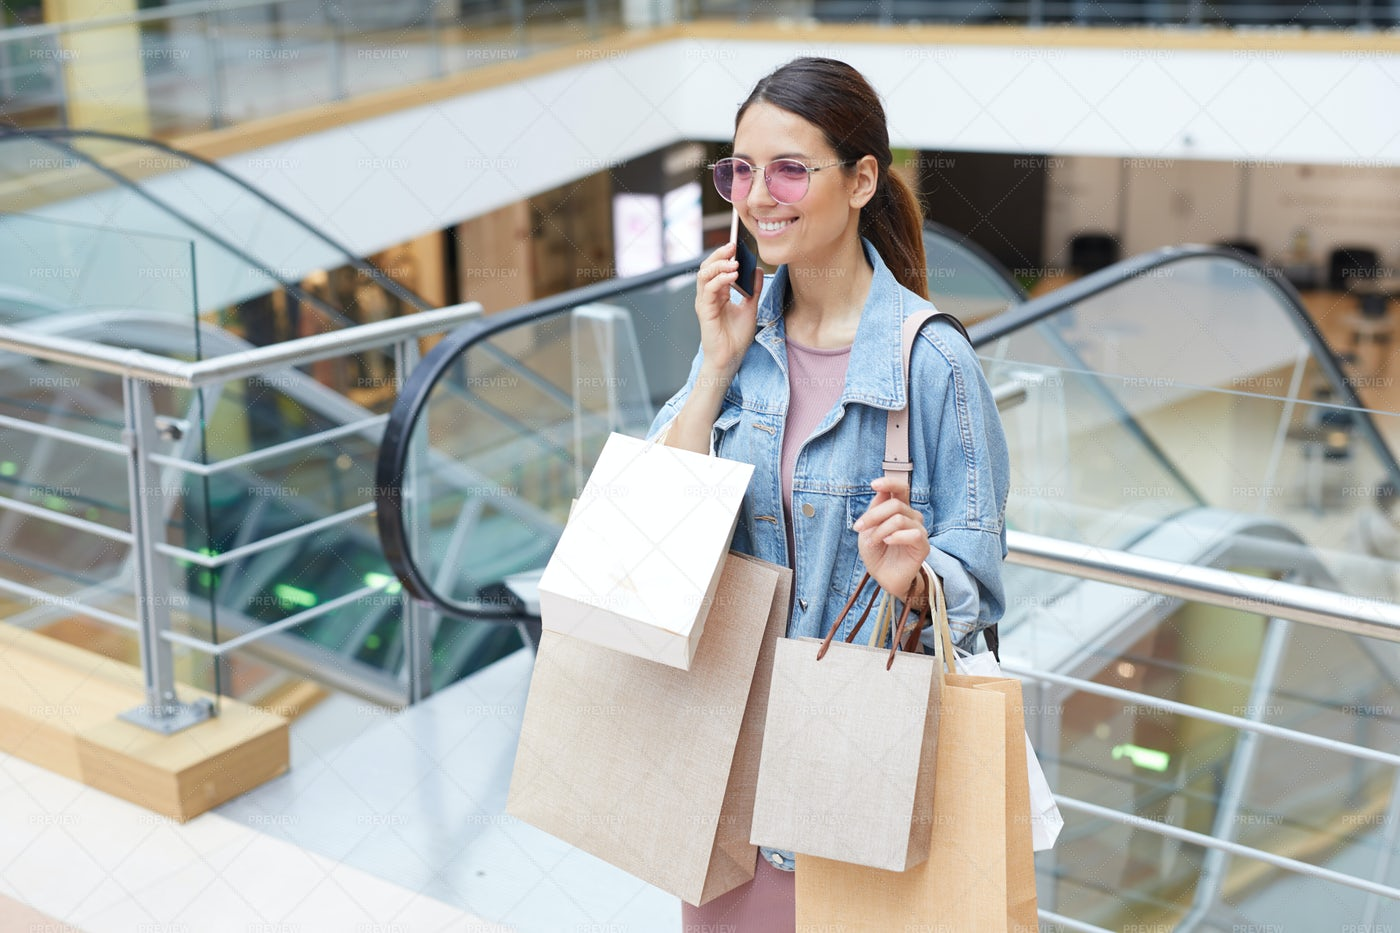 Calling Friend After Shopping: Stock Photos